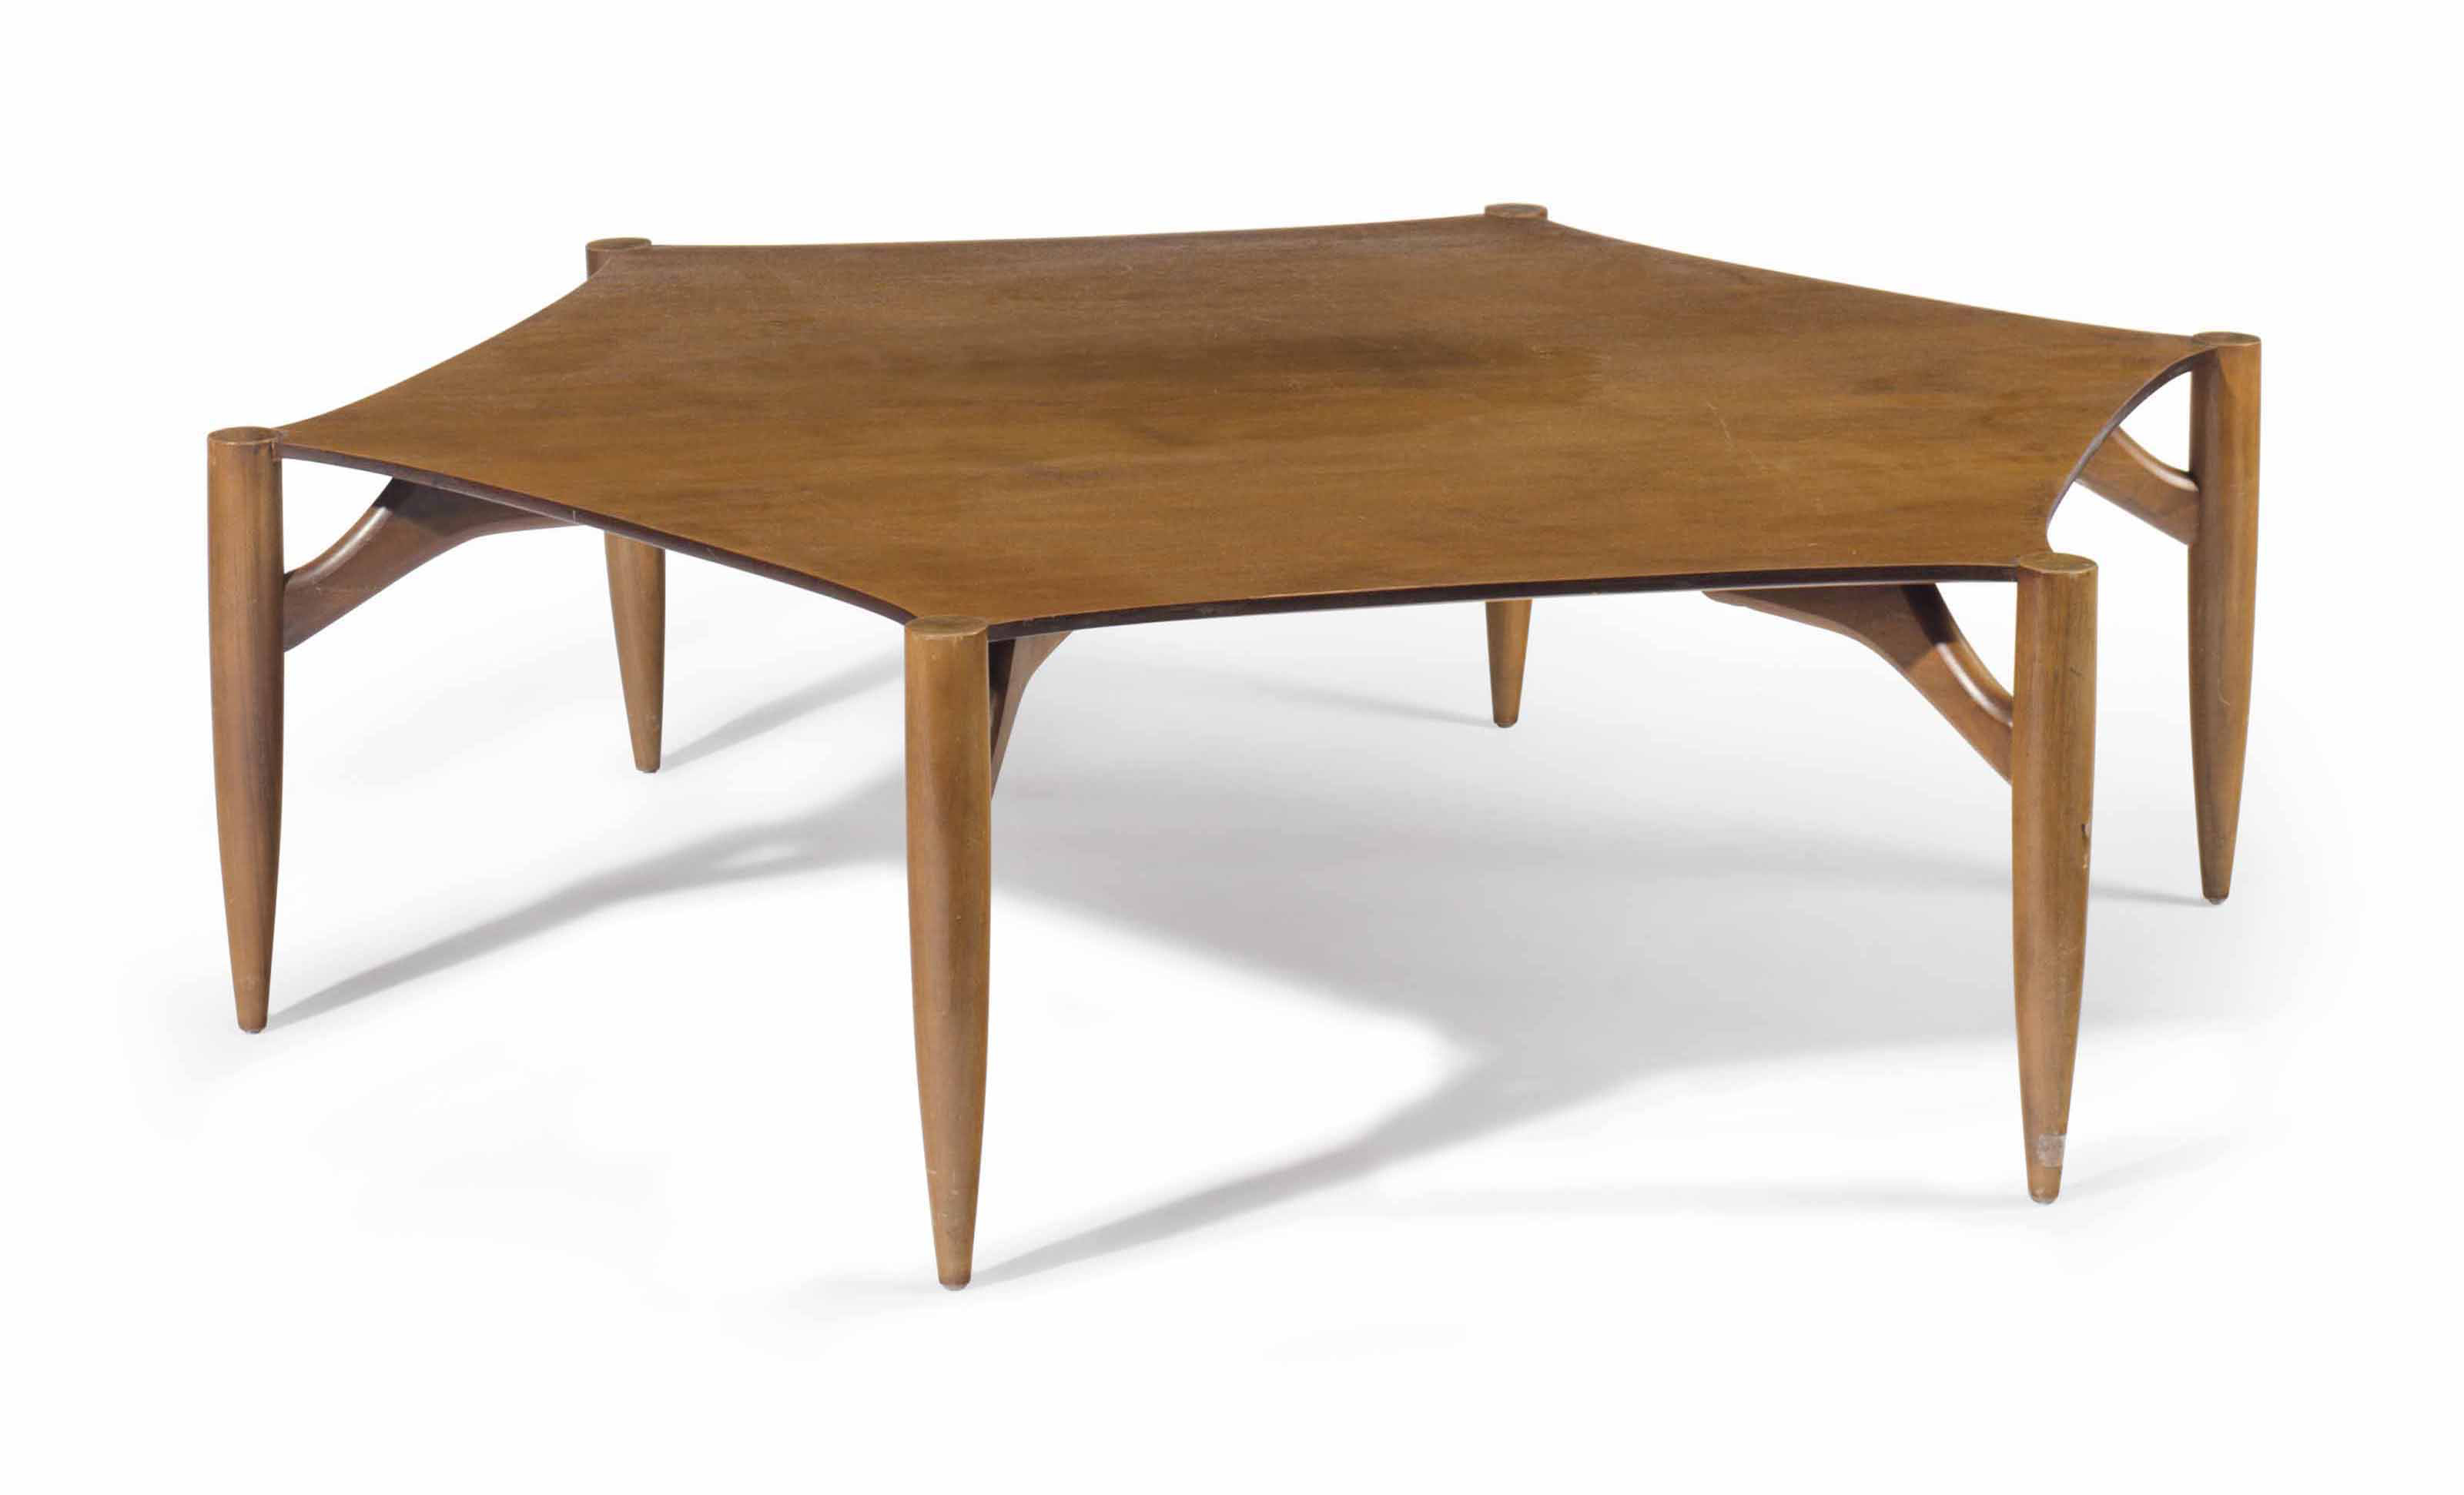 Awe Inspiring Greta Magnusson Grossman 1906 1999 A Hexagonal Coffee Gmtry Best Dining Table And Chair Ideas Images Gmtryco